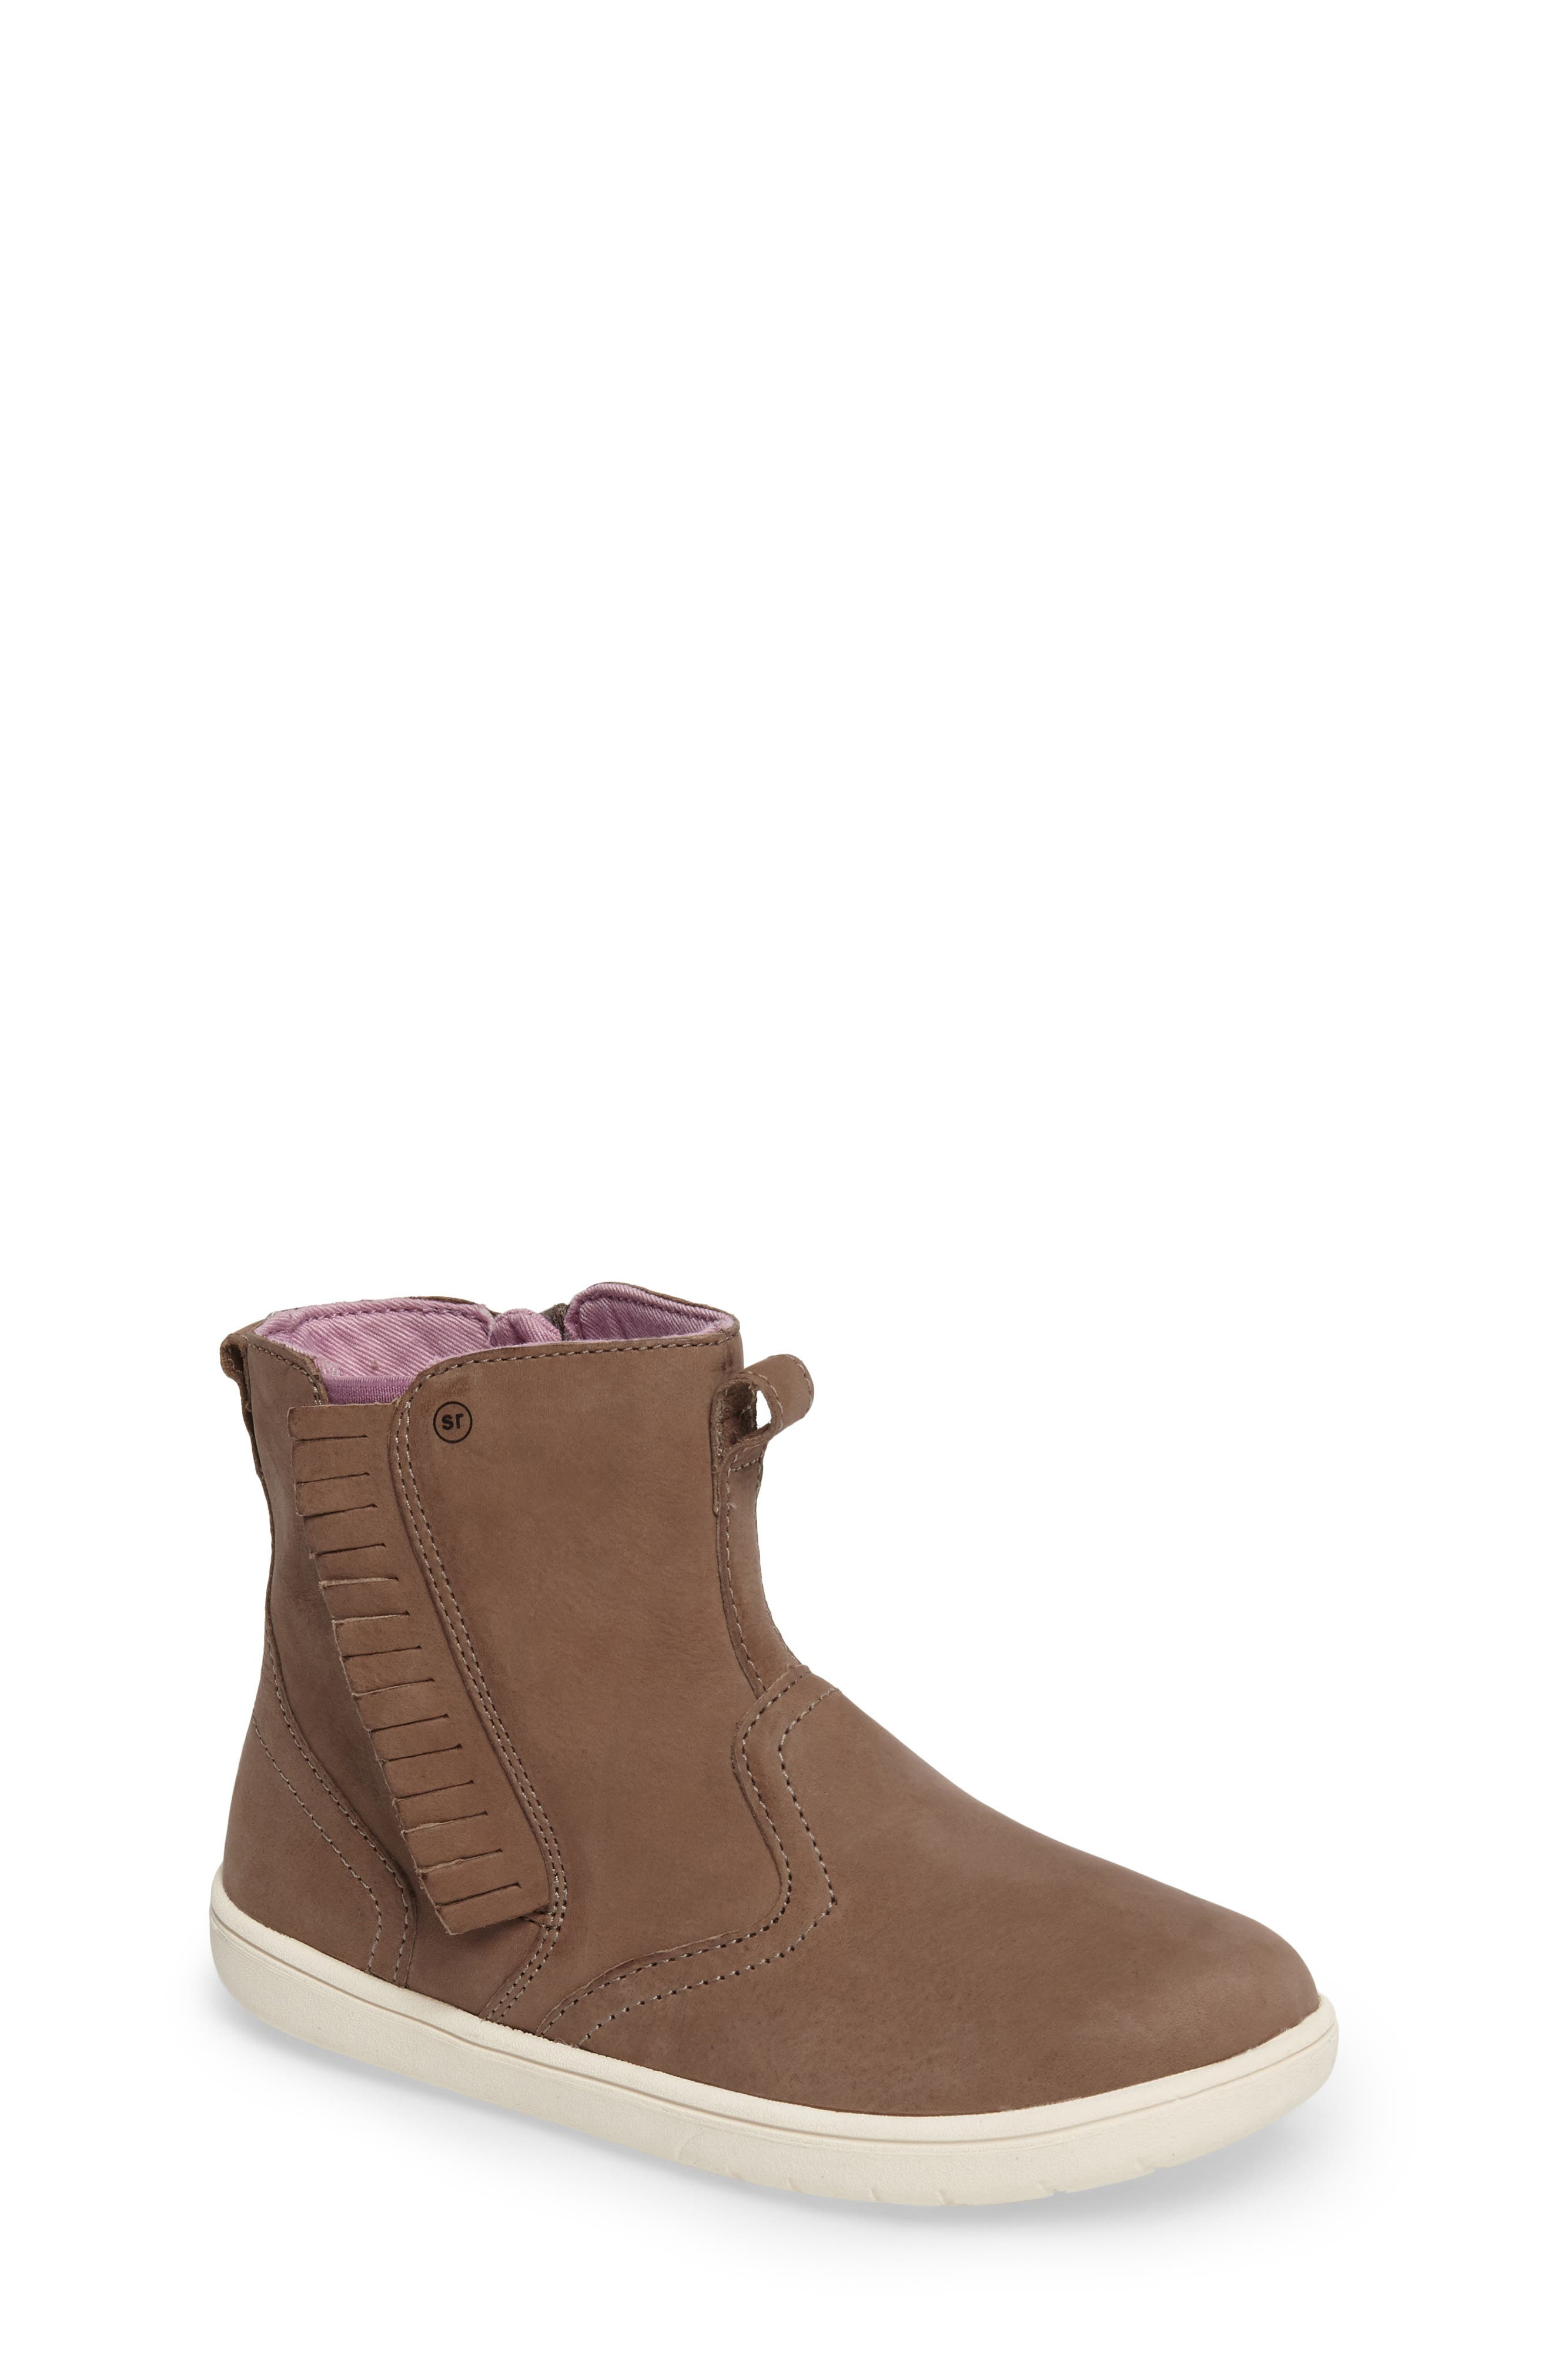 STRIDE RITE SRtech<sup>™</sup> Maxine Fringed Bootie, Main, color, 210